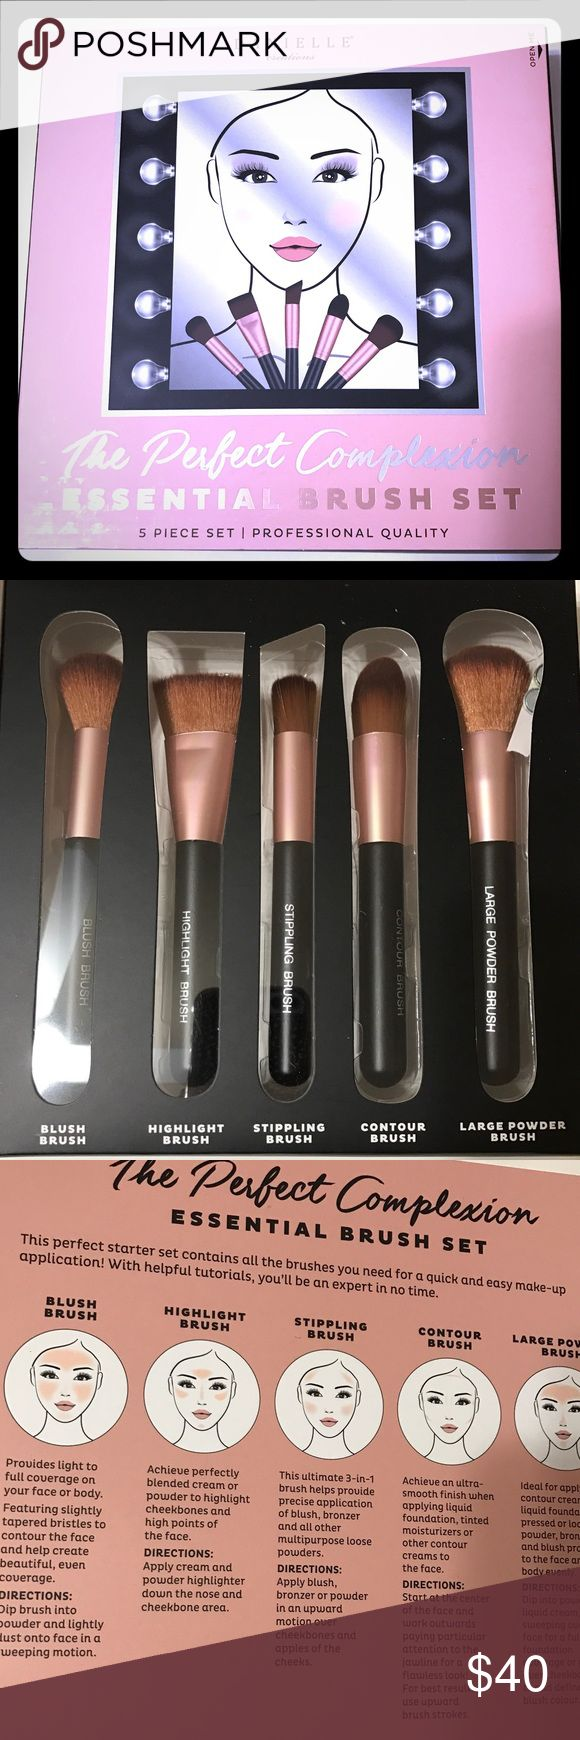 Perfect Complexion 5 piece Brush Set This Perfect Complexion 5 piece Brush Set by Danielle is just what you need in your makeup arsenal to create the perfect face! This perfect starter set contains 5 deluxe professional quality brushes, classic brown hair with Rose Gold Ferrules. Comes with 5 brushes: Blush, Highlight, Stripping, Contour & Powder. Also comes with instruction guide on the inside panel to show you the best way to use each one for the makeup novice or a refresher for the Pro…